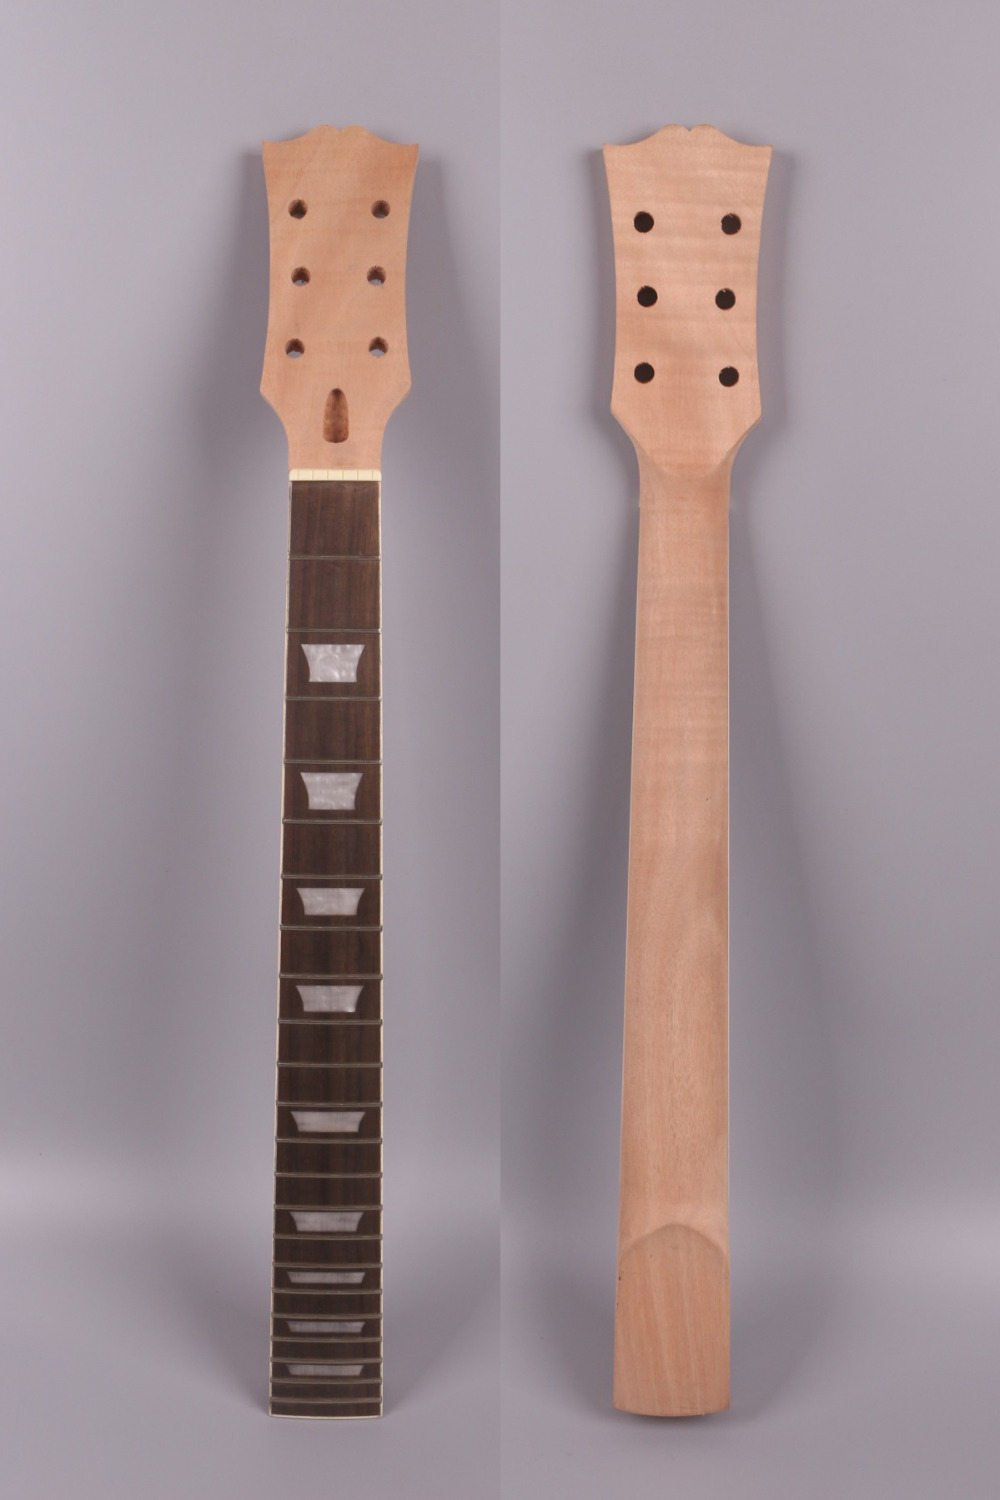 unfinishede electric  guitar neck 22 fret Locking nut 628mm mahogany  made  and  rosewood  fingerboard 005#<br>